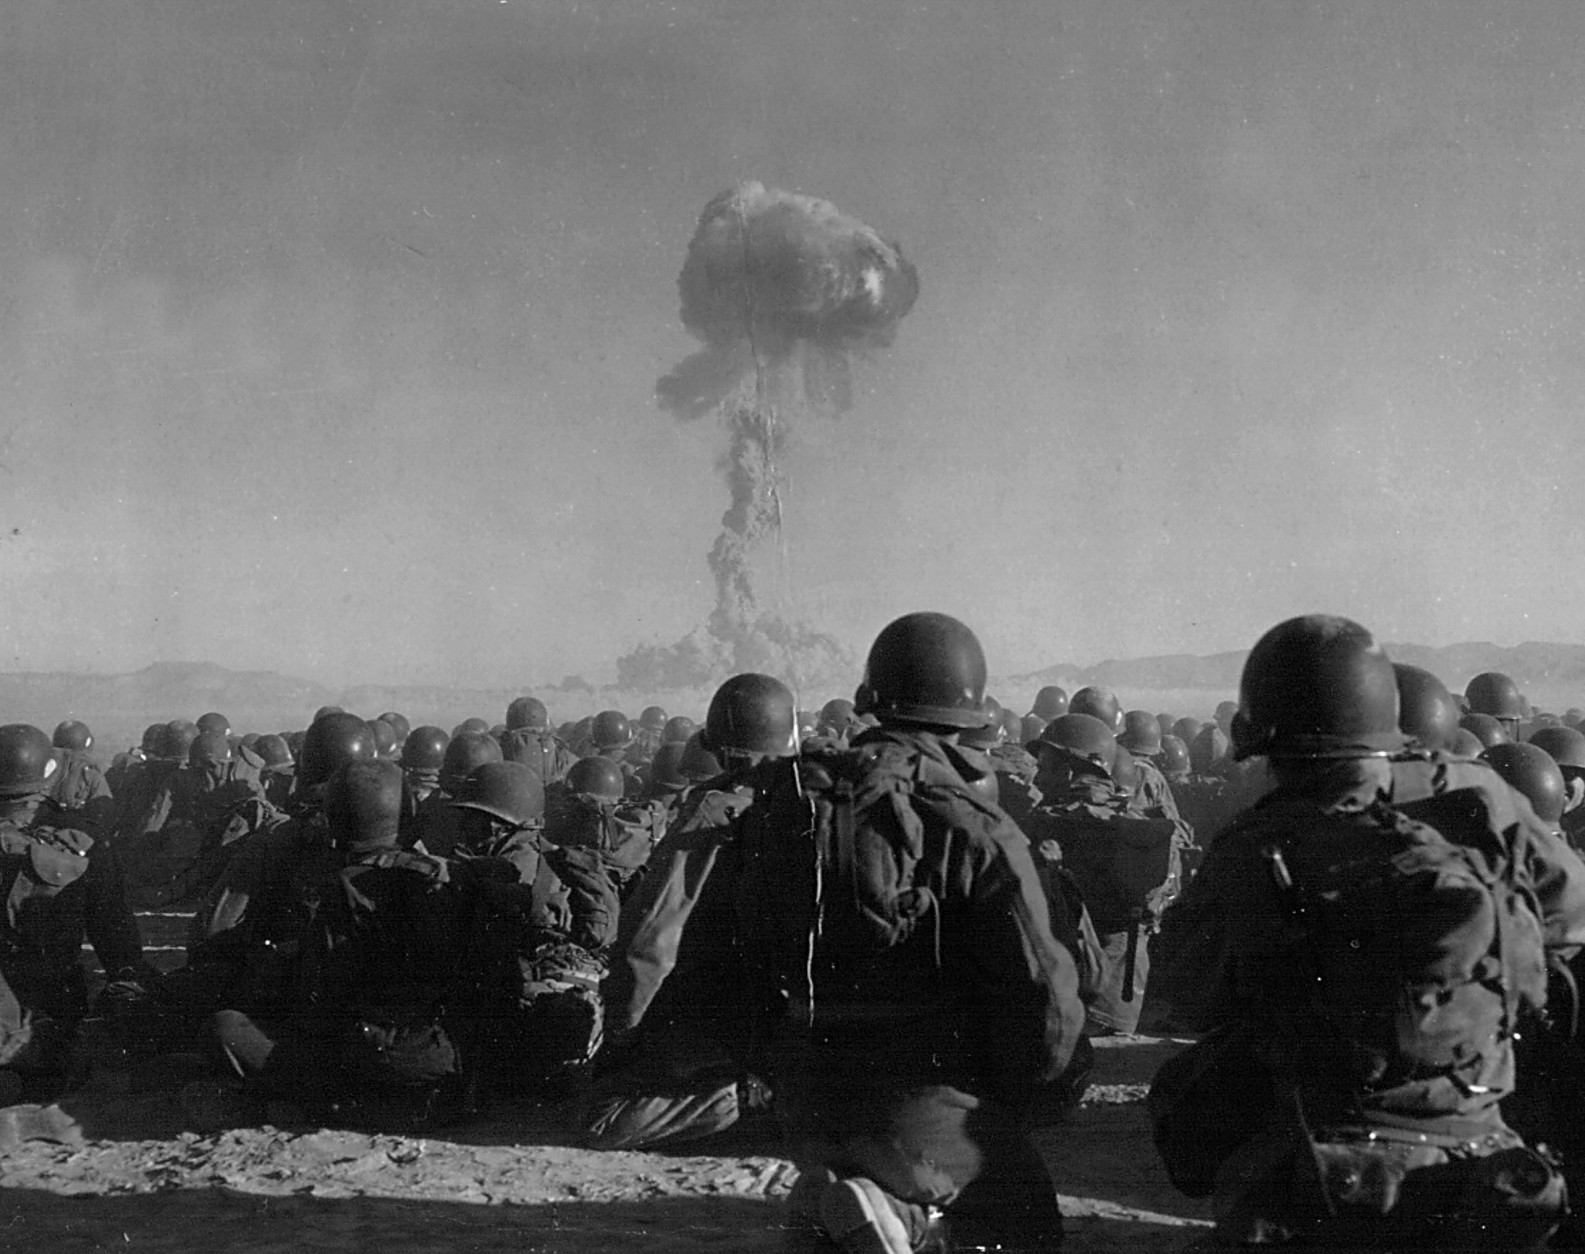 379631 13: Troops of the U.S. Army 11th Airborne Division watch a plume of radioactive smoke rise November 1, 1951 after a blast at Yucca Flats, Nevada . (Photo by National Archive/Newsmakers)